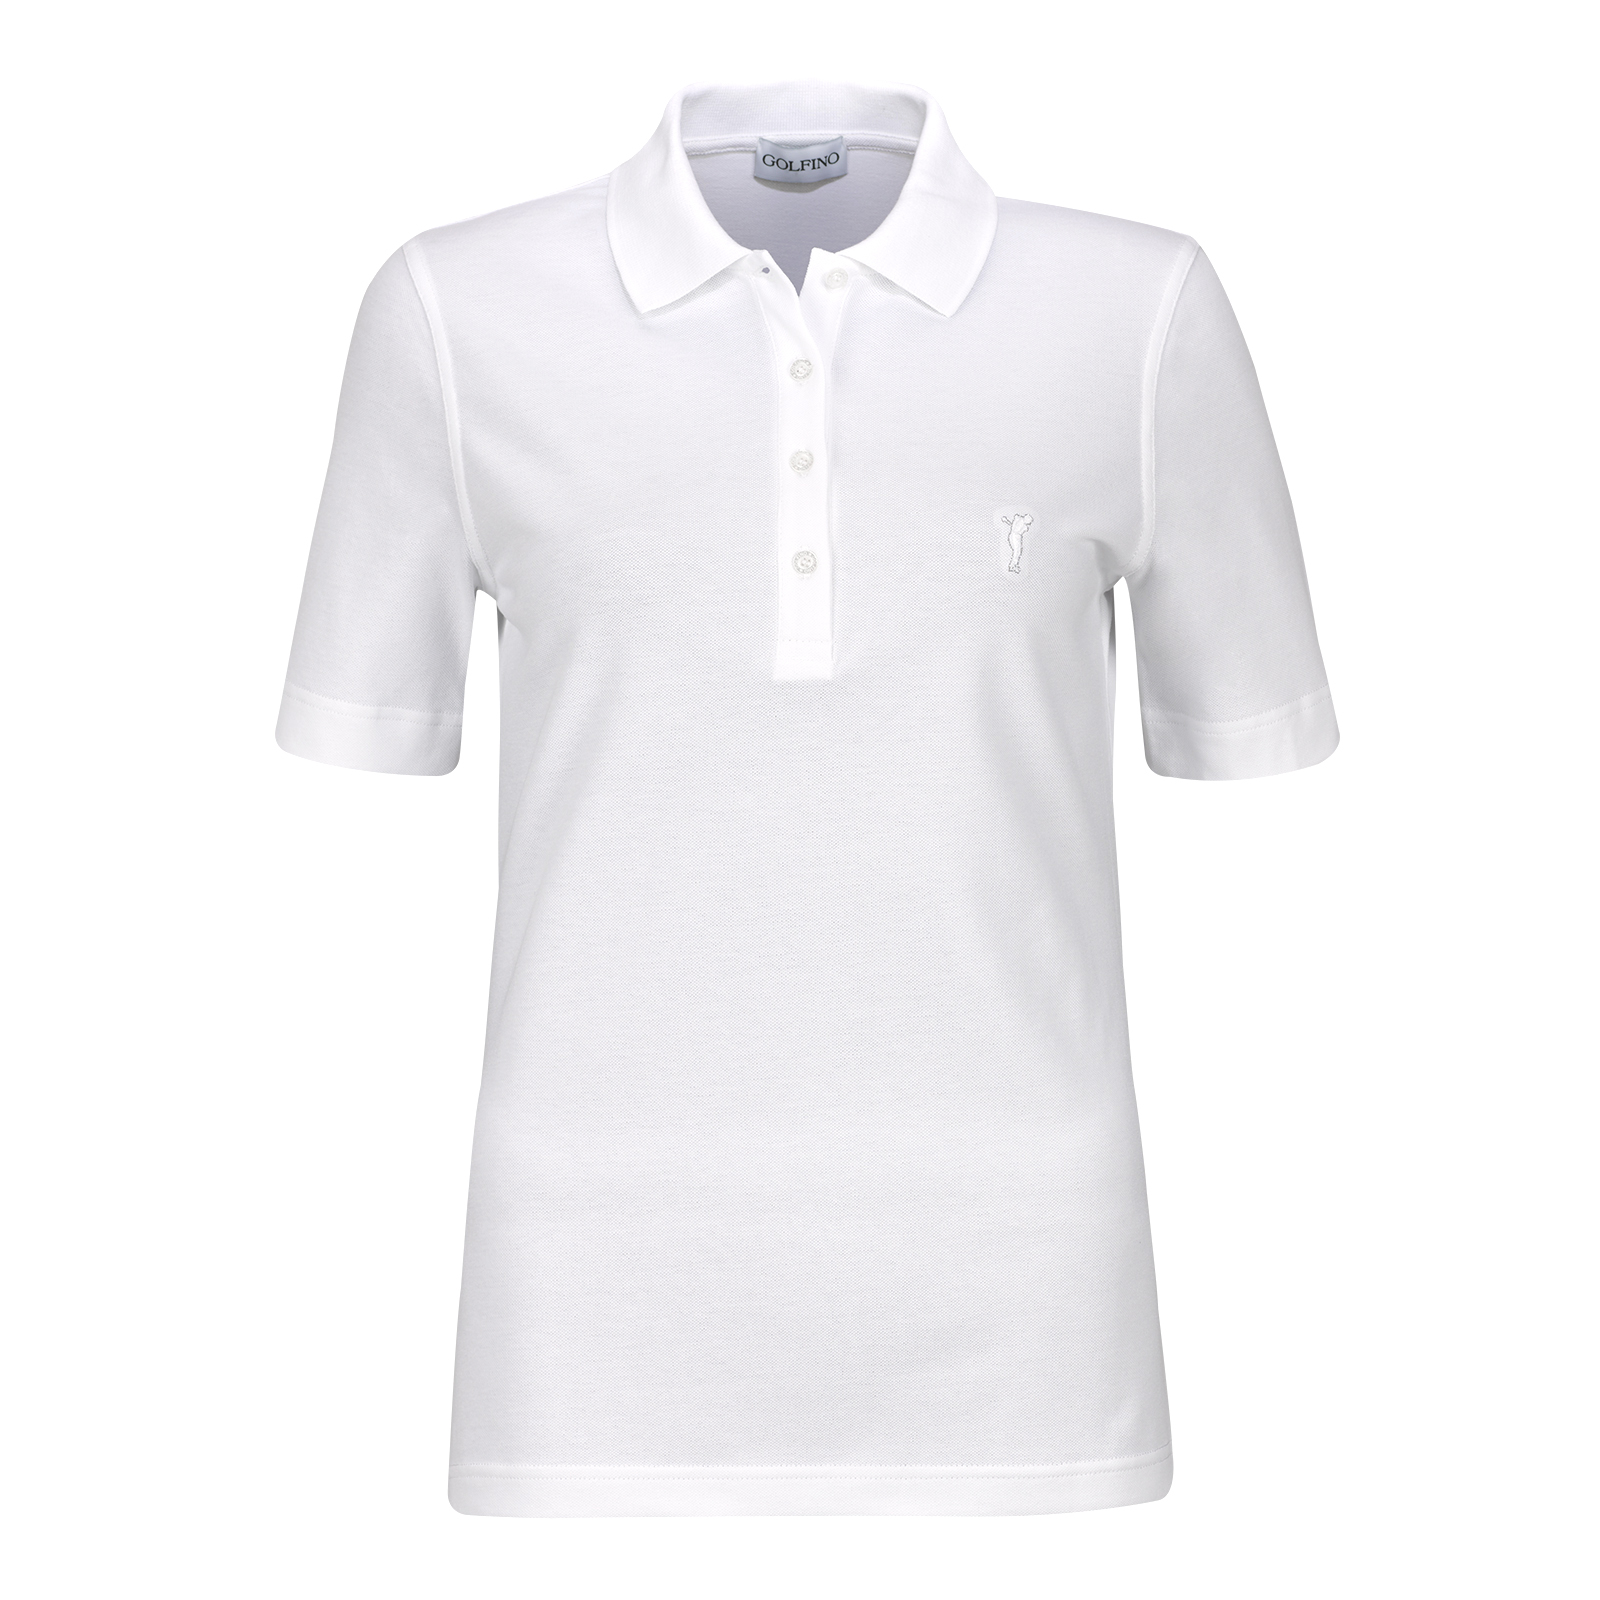 Basic Cotton Blend Damen Kurzarm Golf-Polohemd mit Stretchfunktion